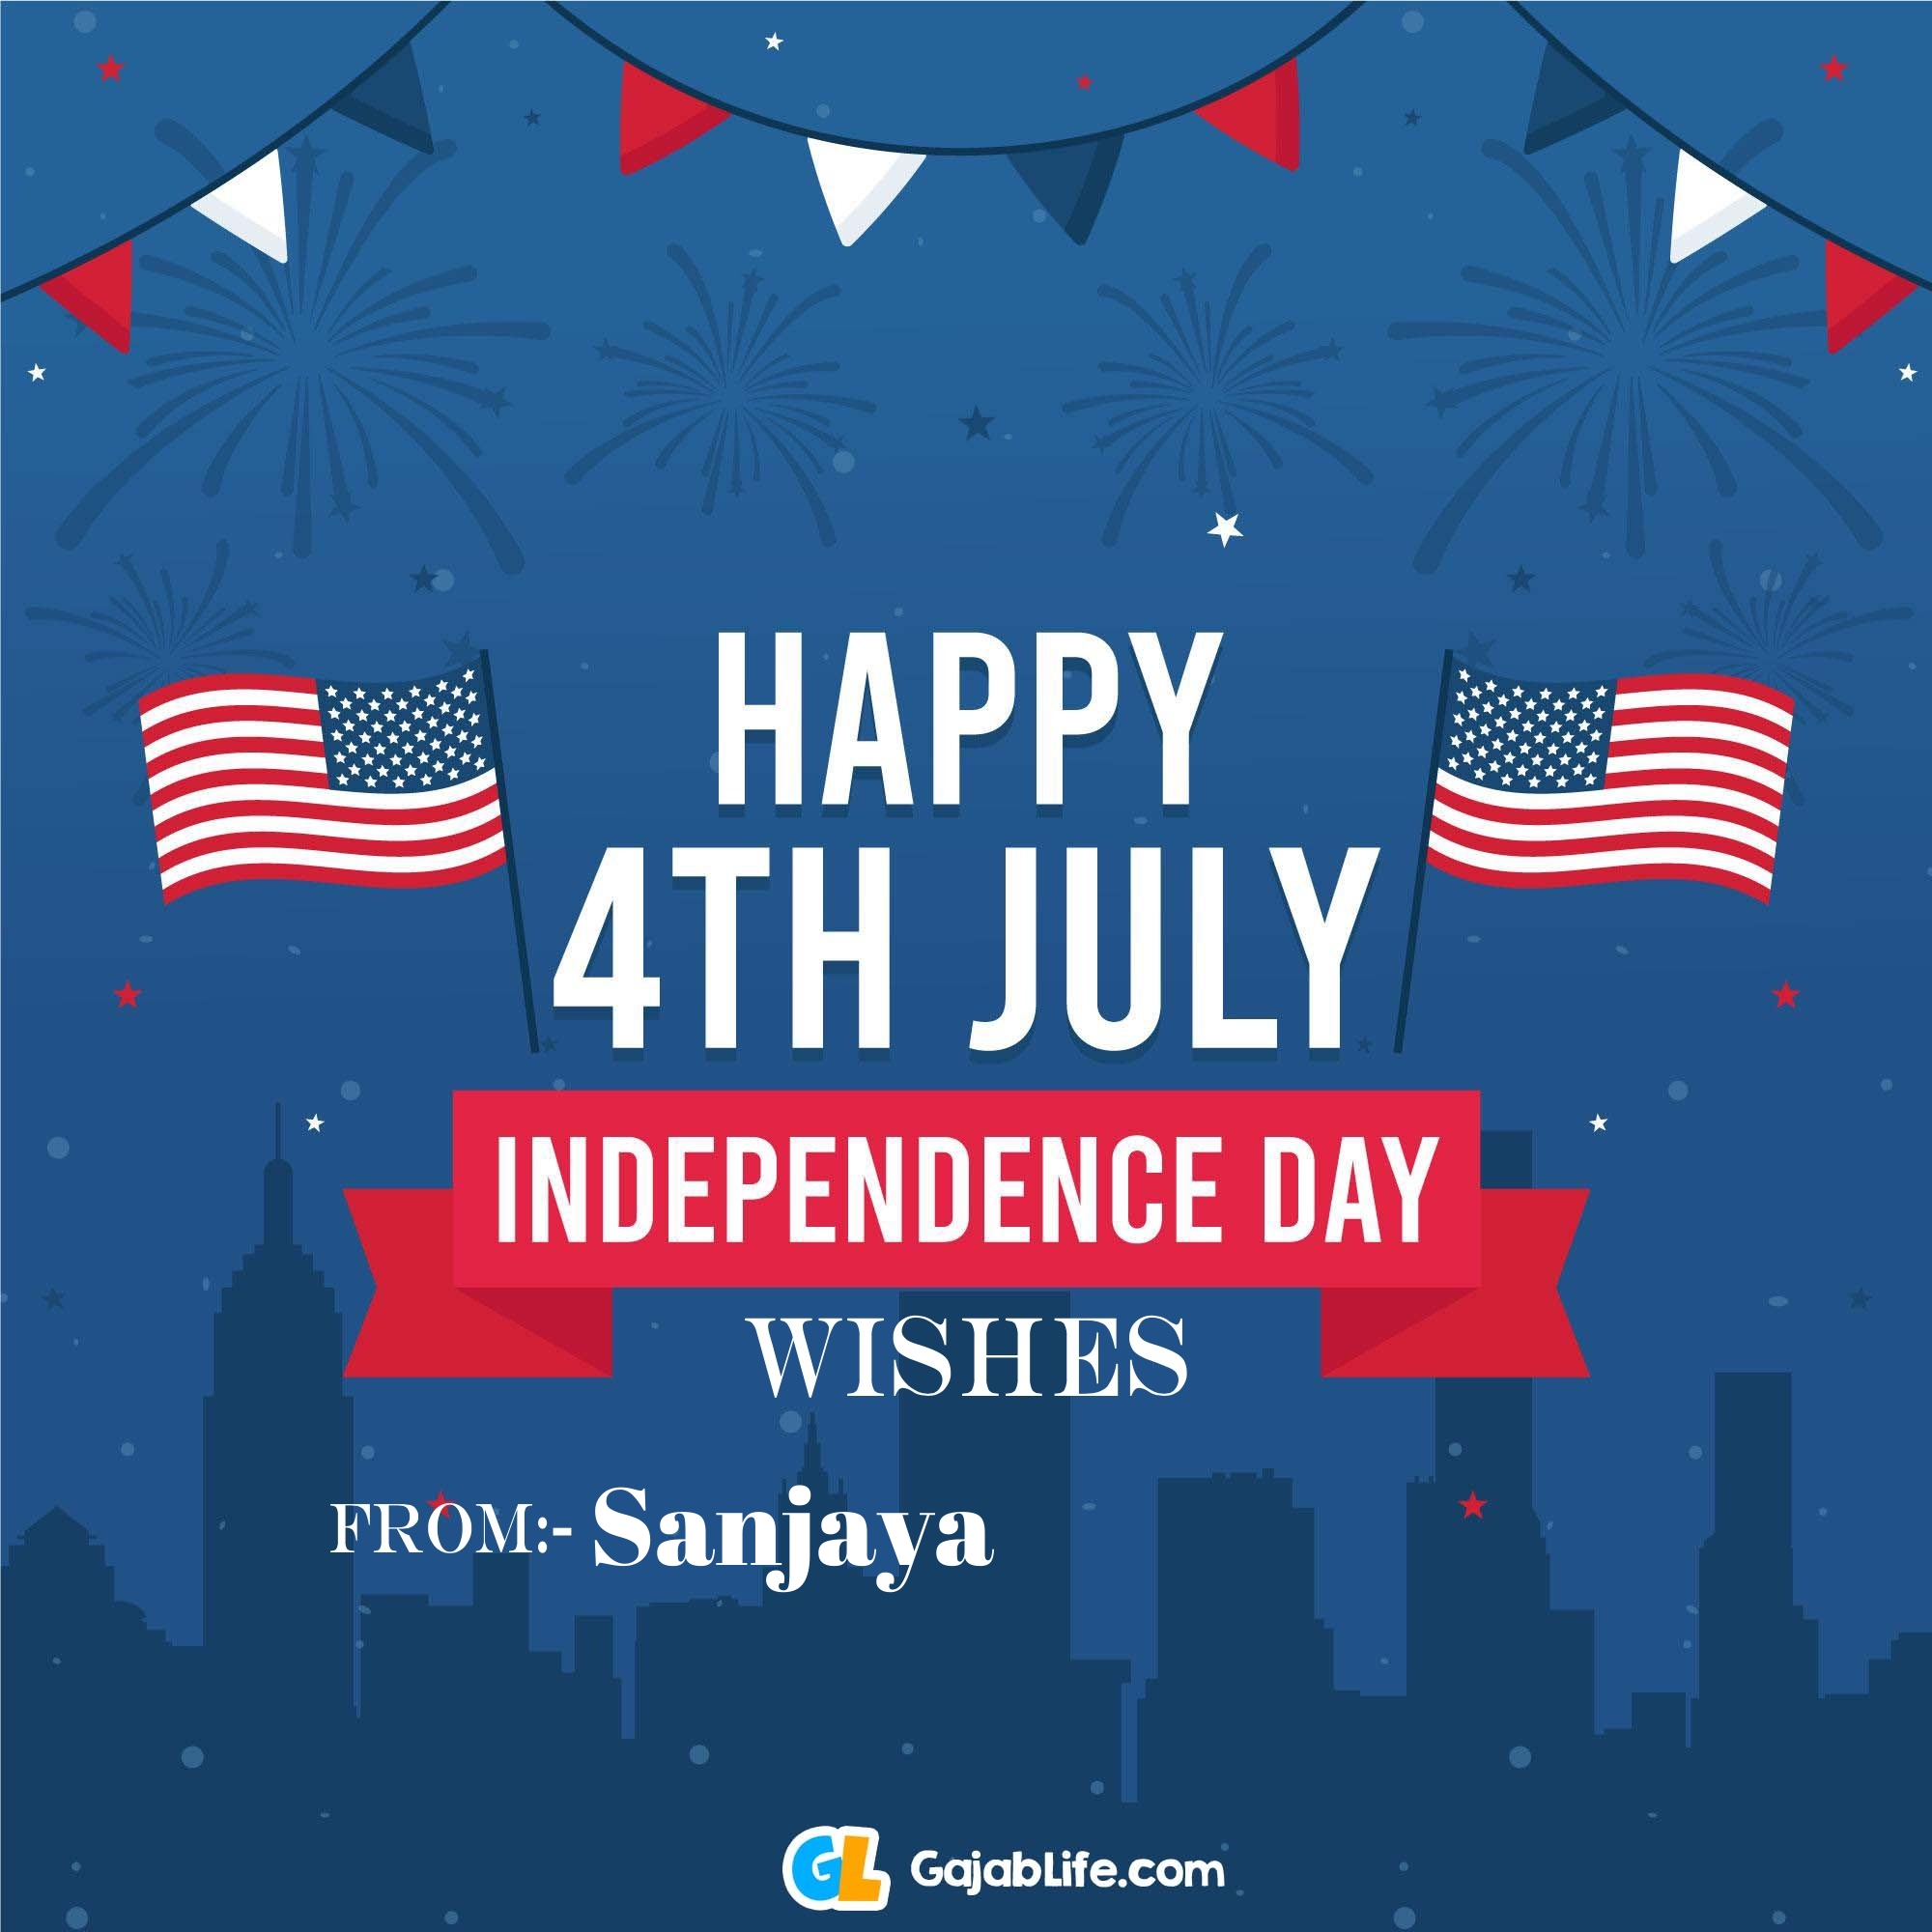 Sanjaya happy independence day united states of america images